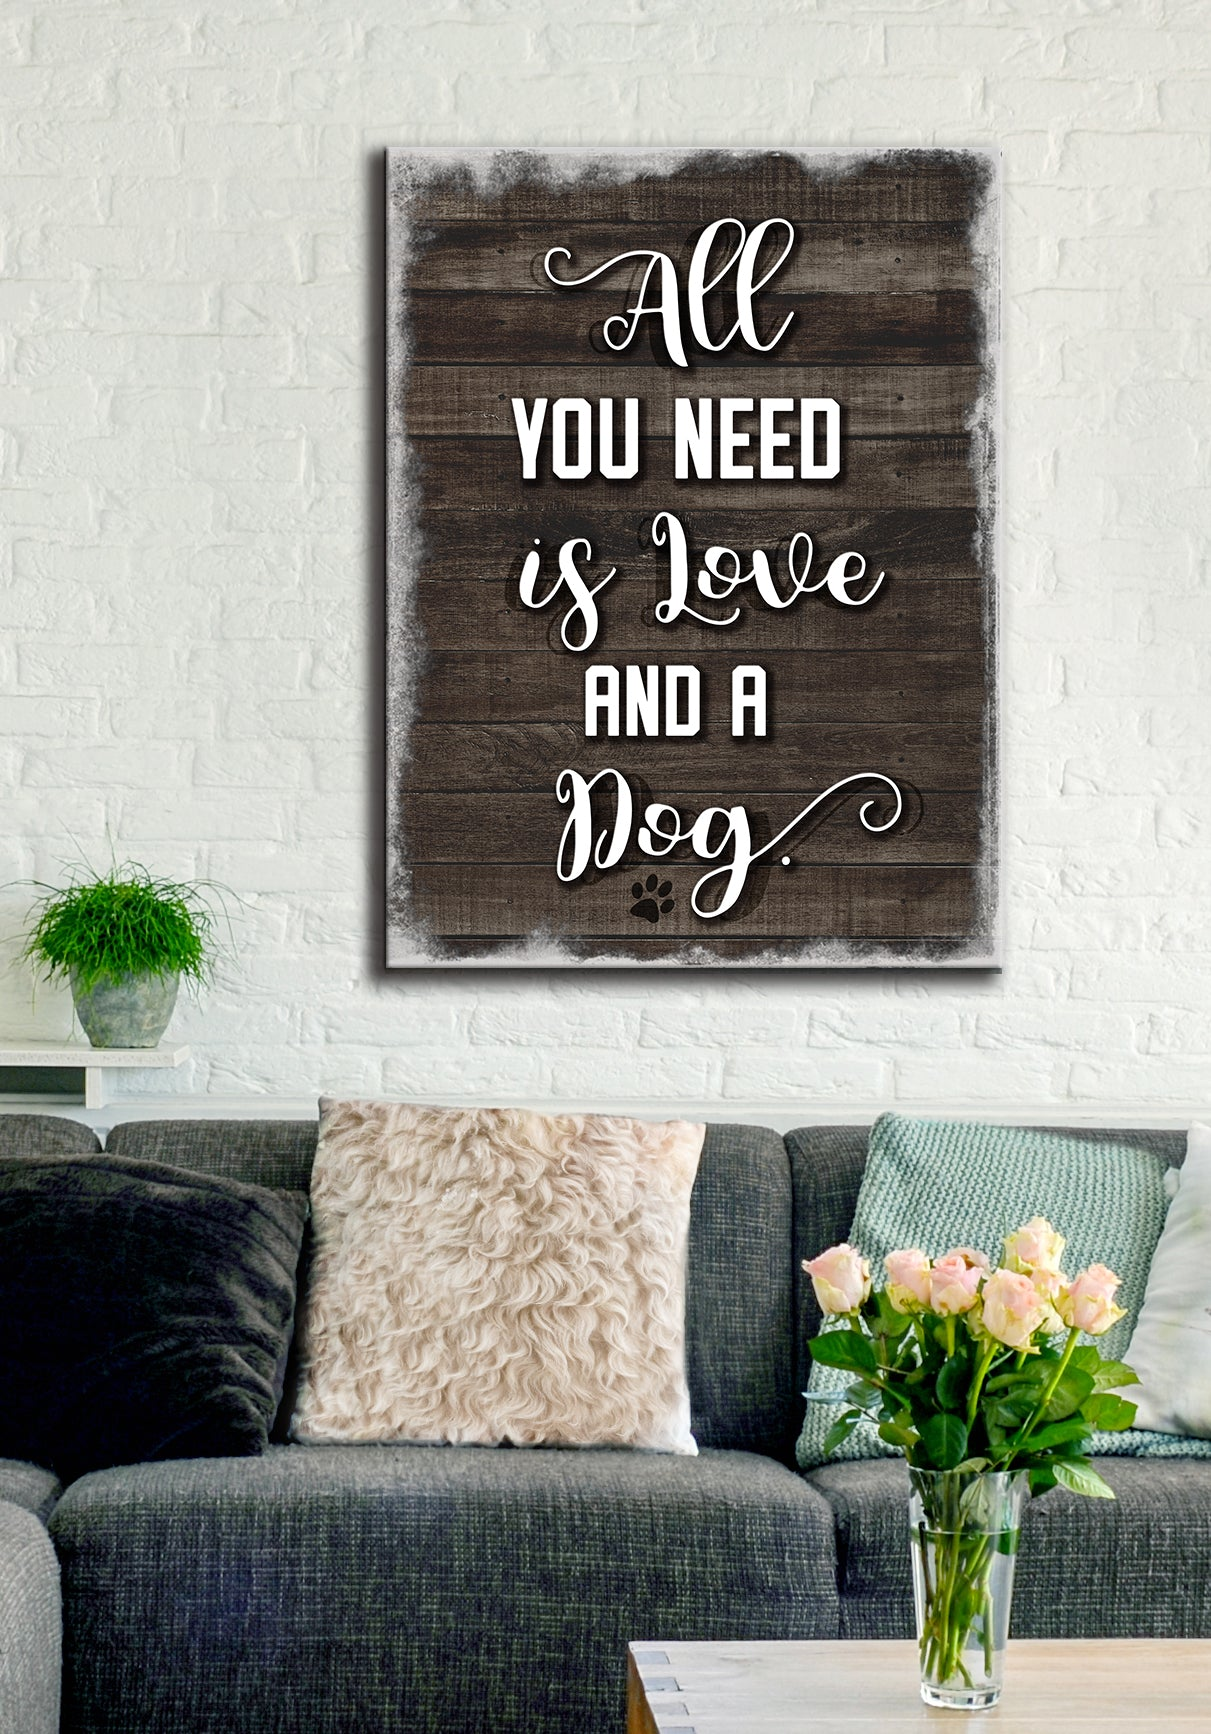 Pet Wall Art: All You Need Is Love & A Dog (Wood Frame Ready To Hang)